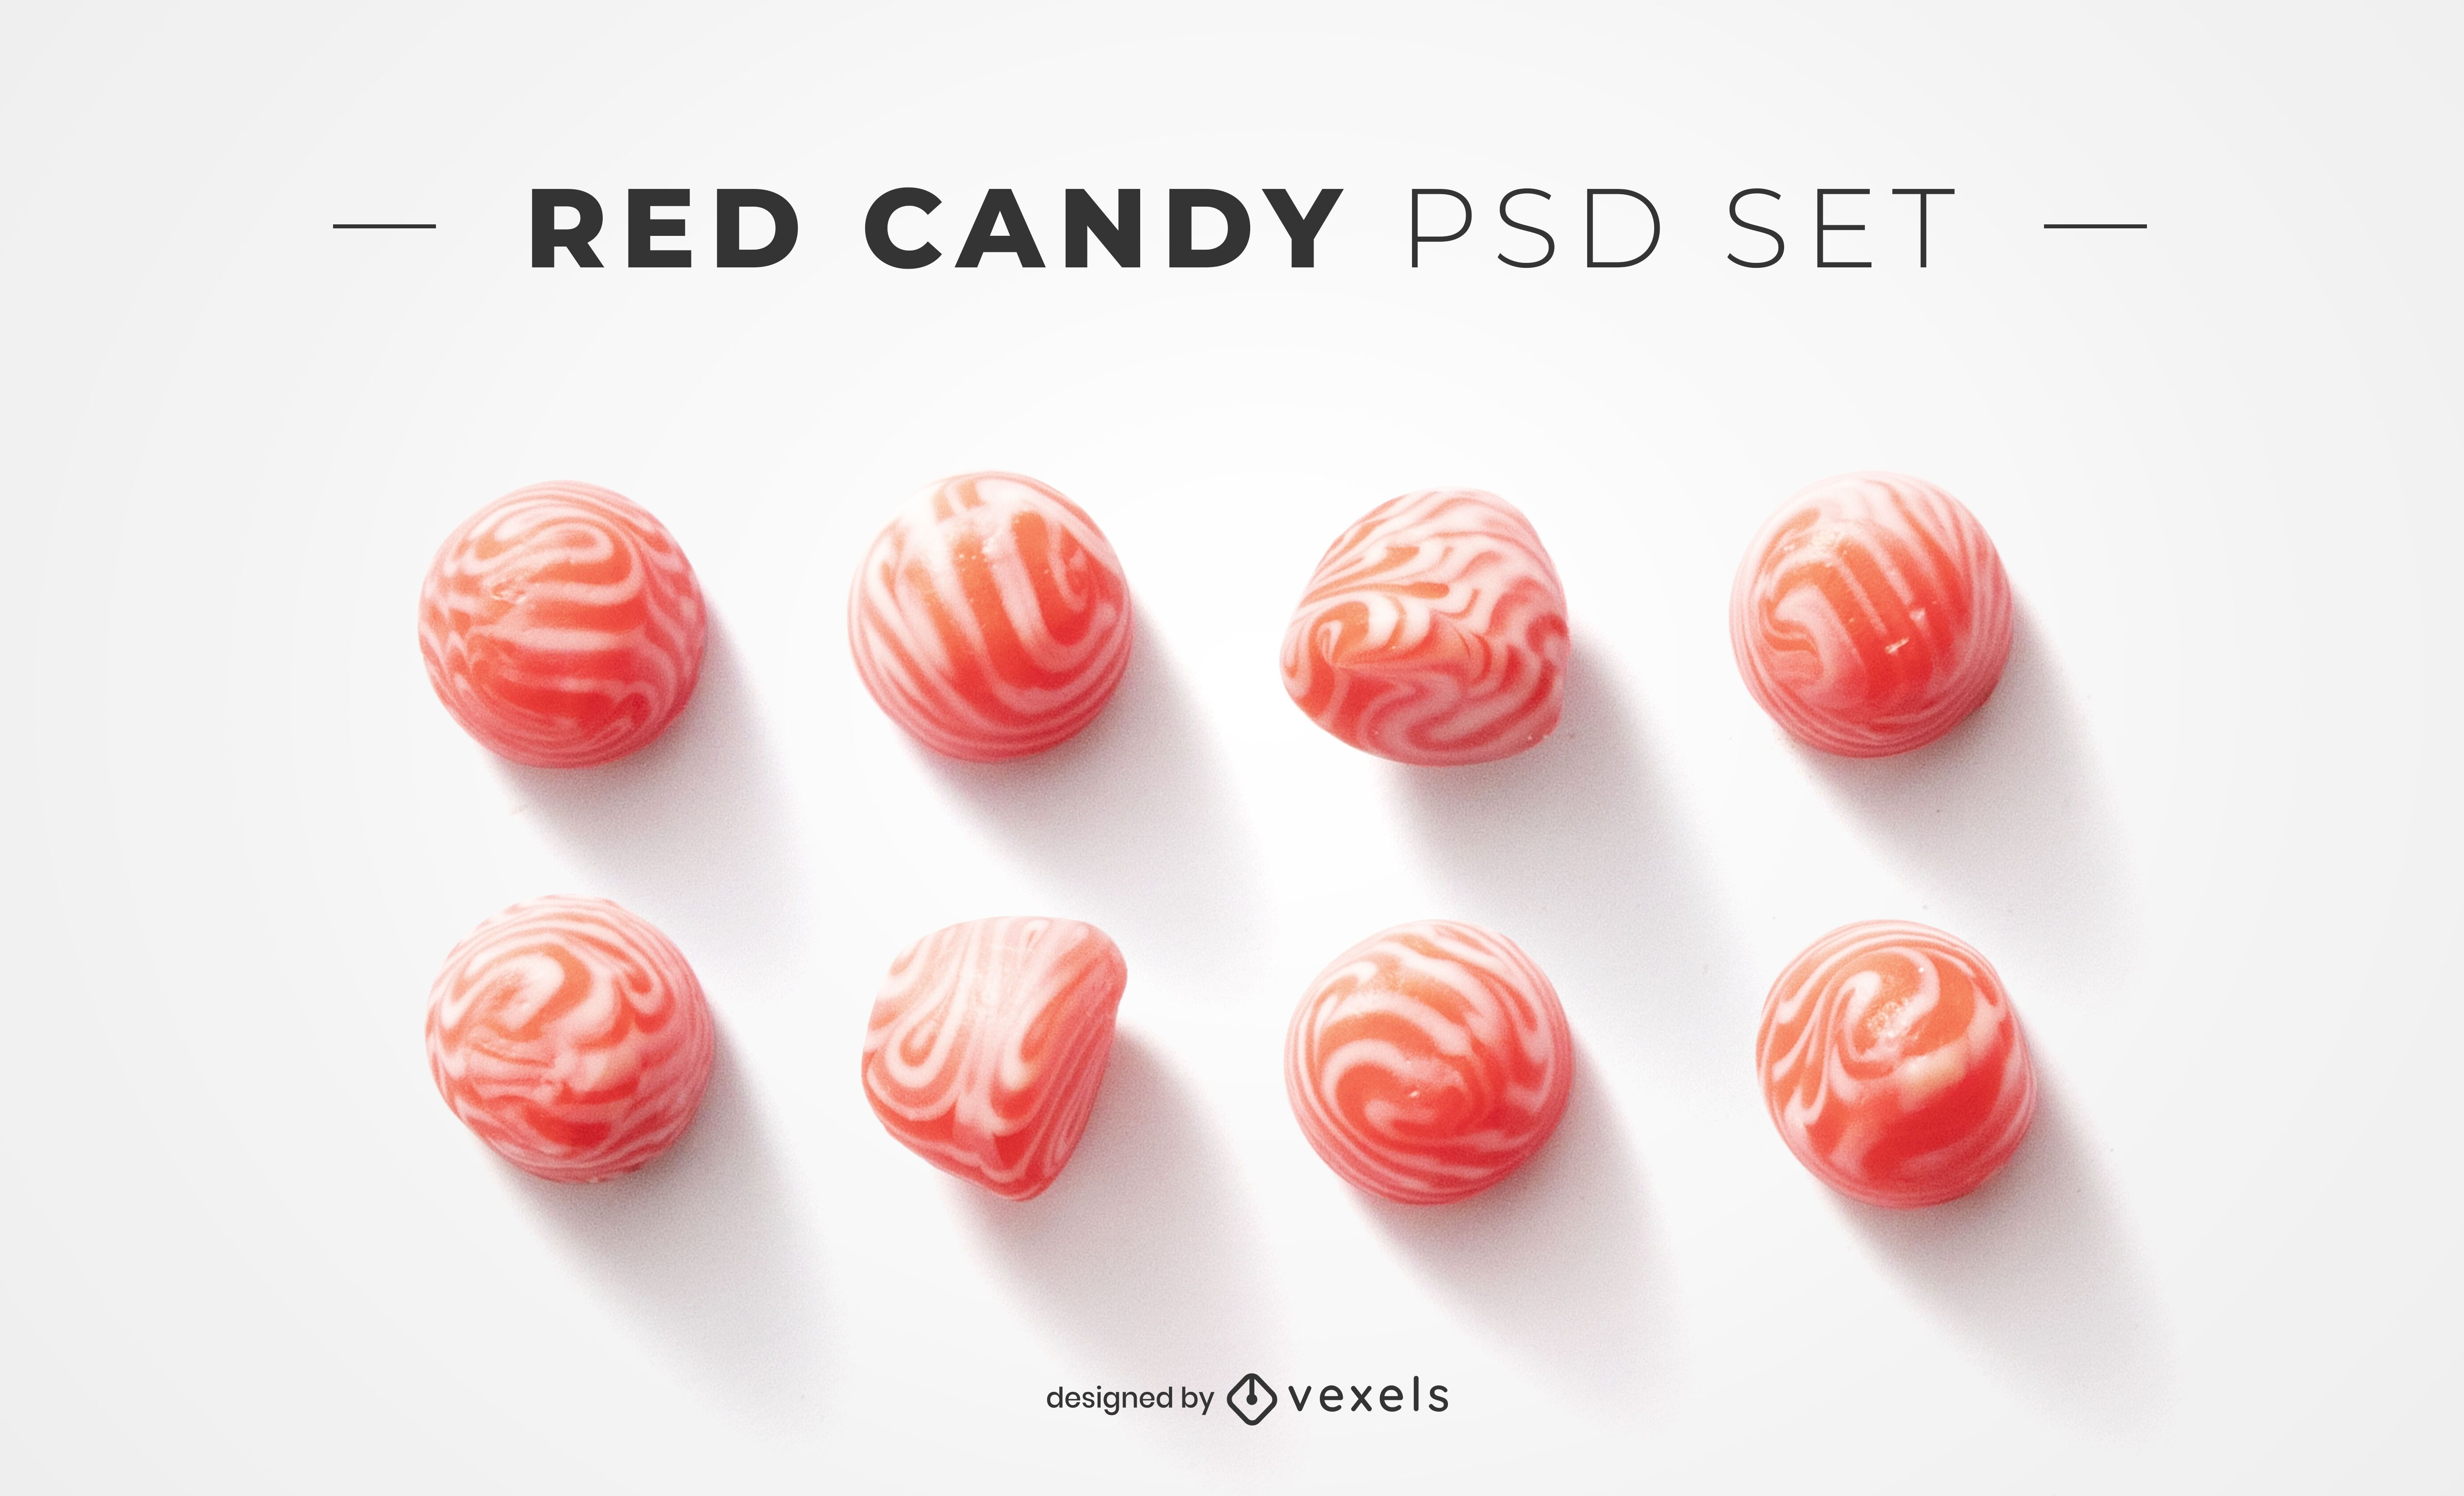 Red candies psd elements for mockups